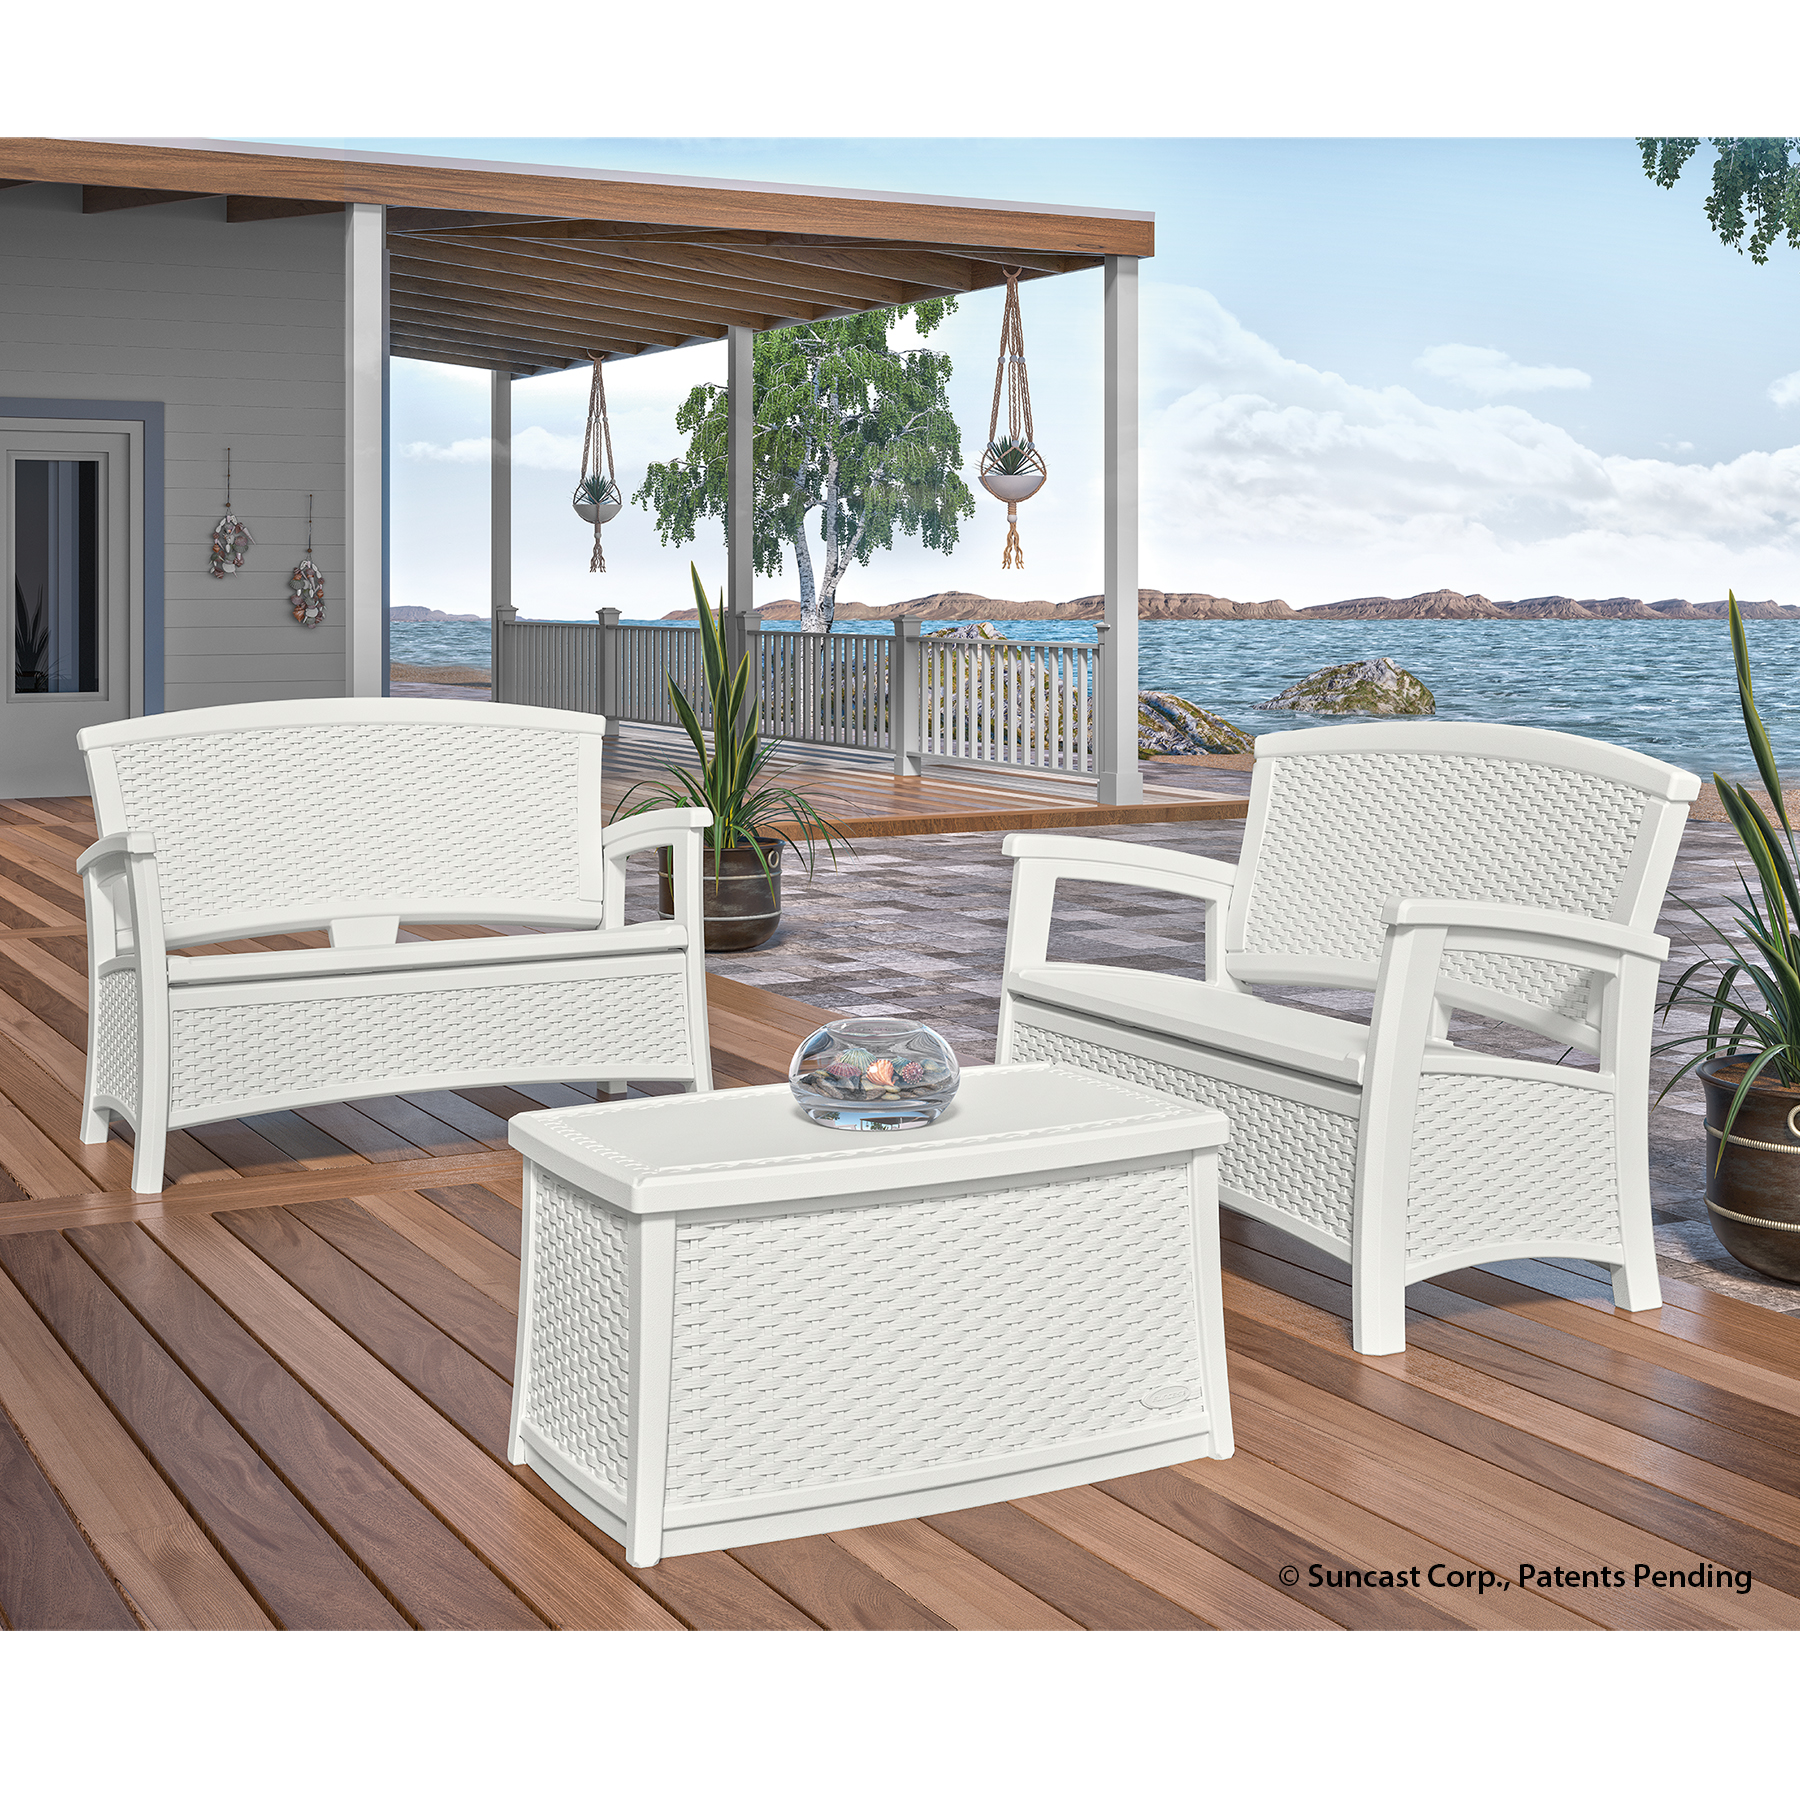 3 Piece Essentials Loveseat Patio Set - White